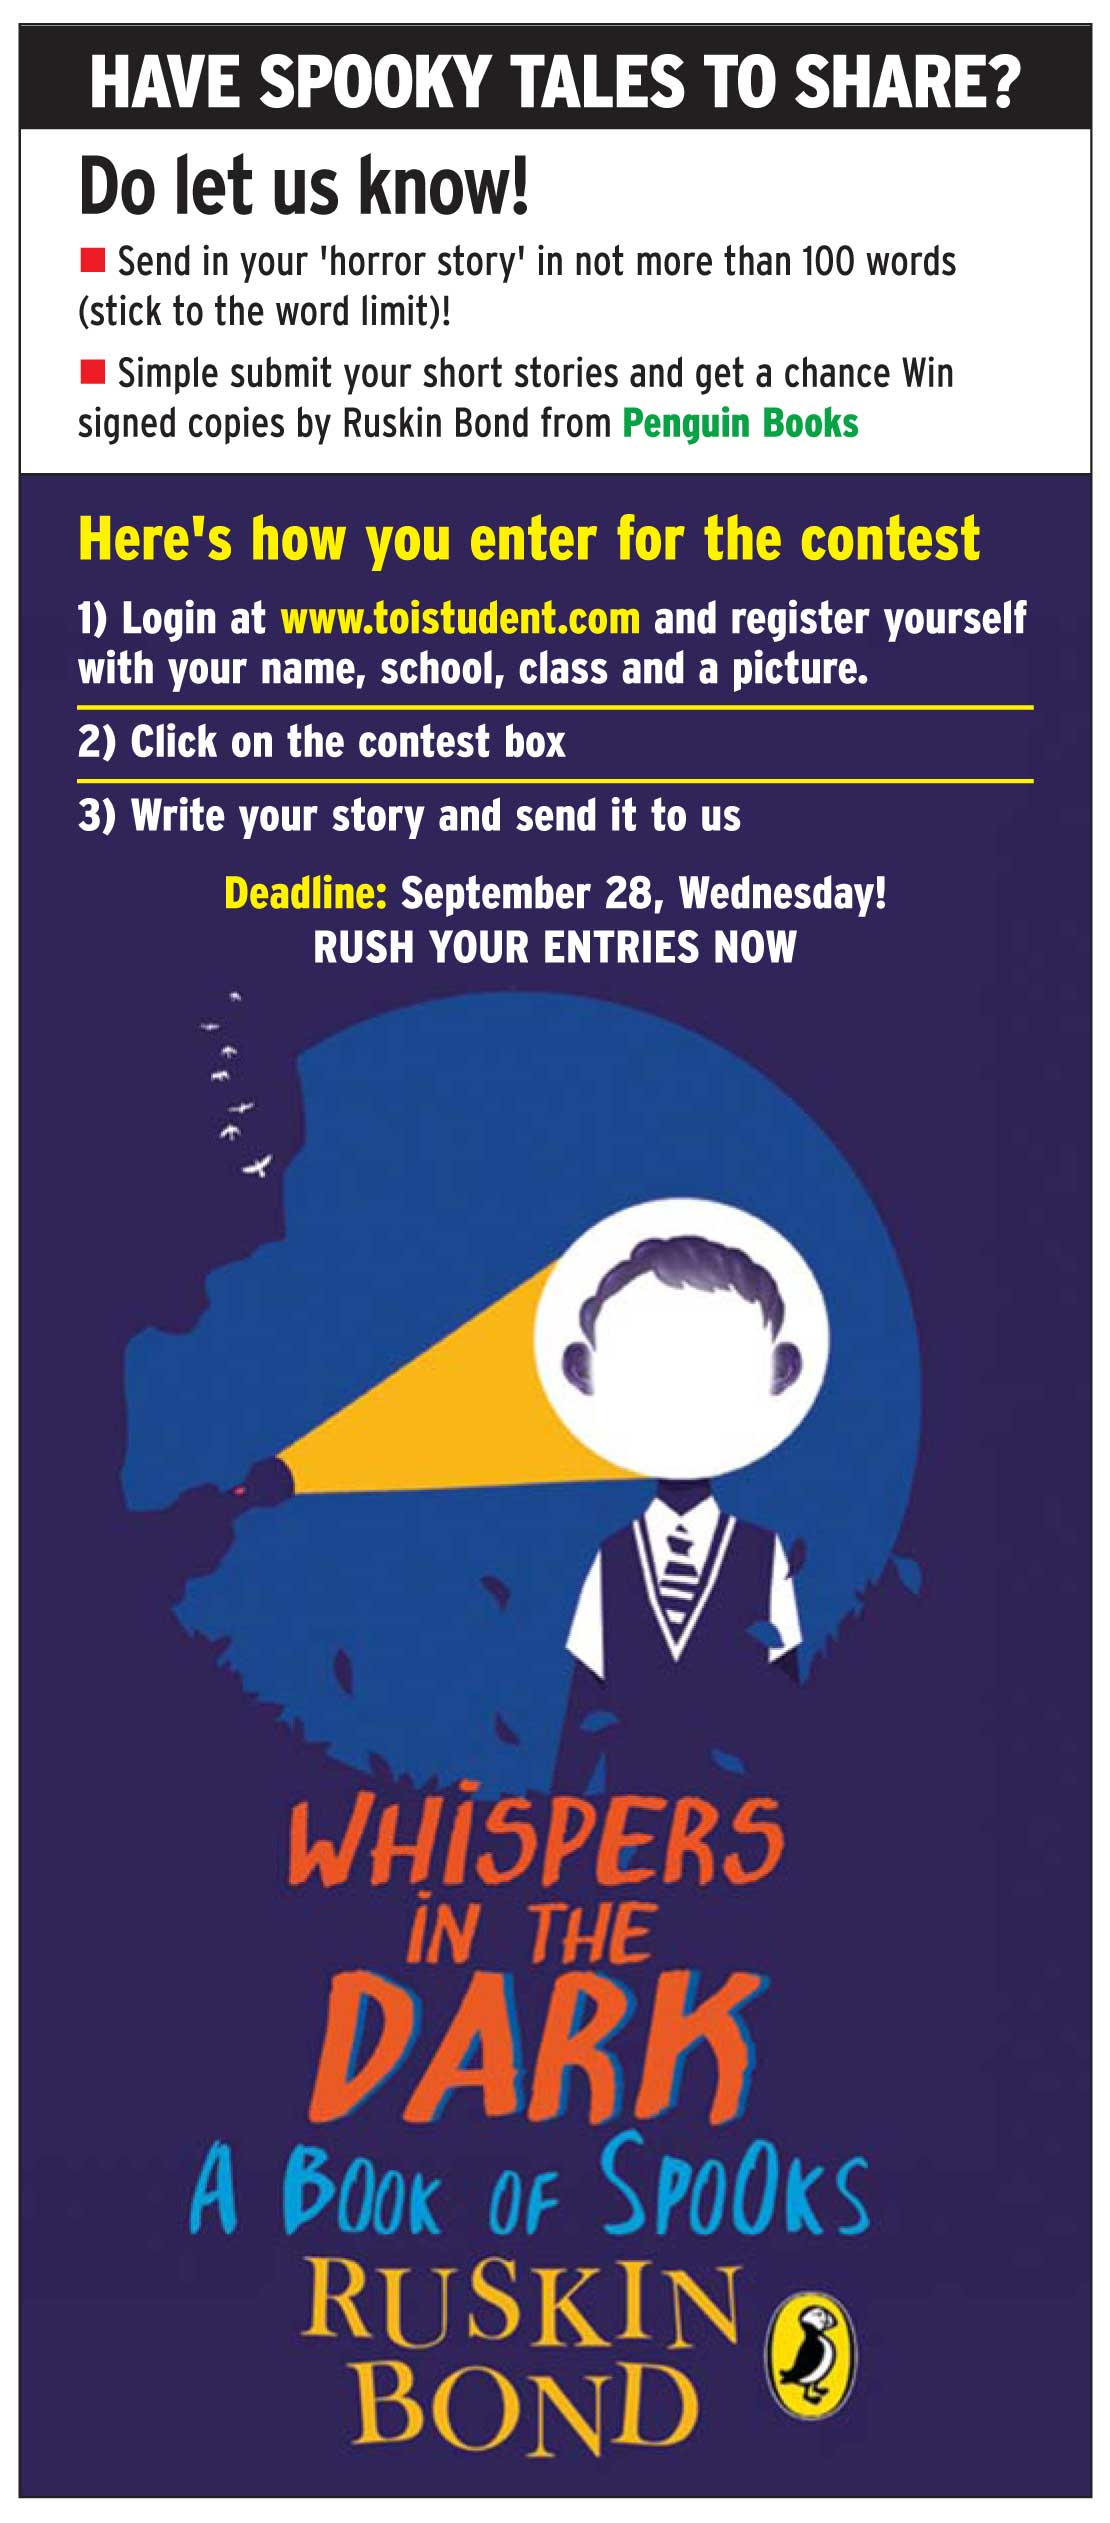 Send Your Spooky Tales To Win Prizes